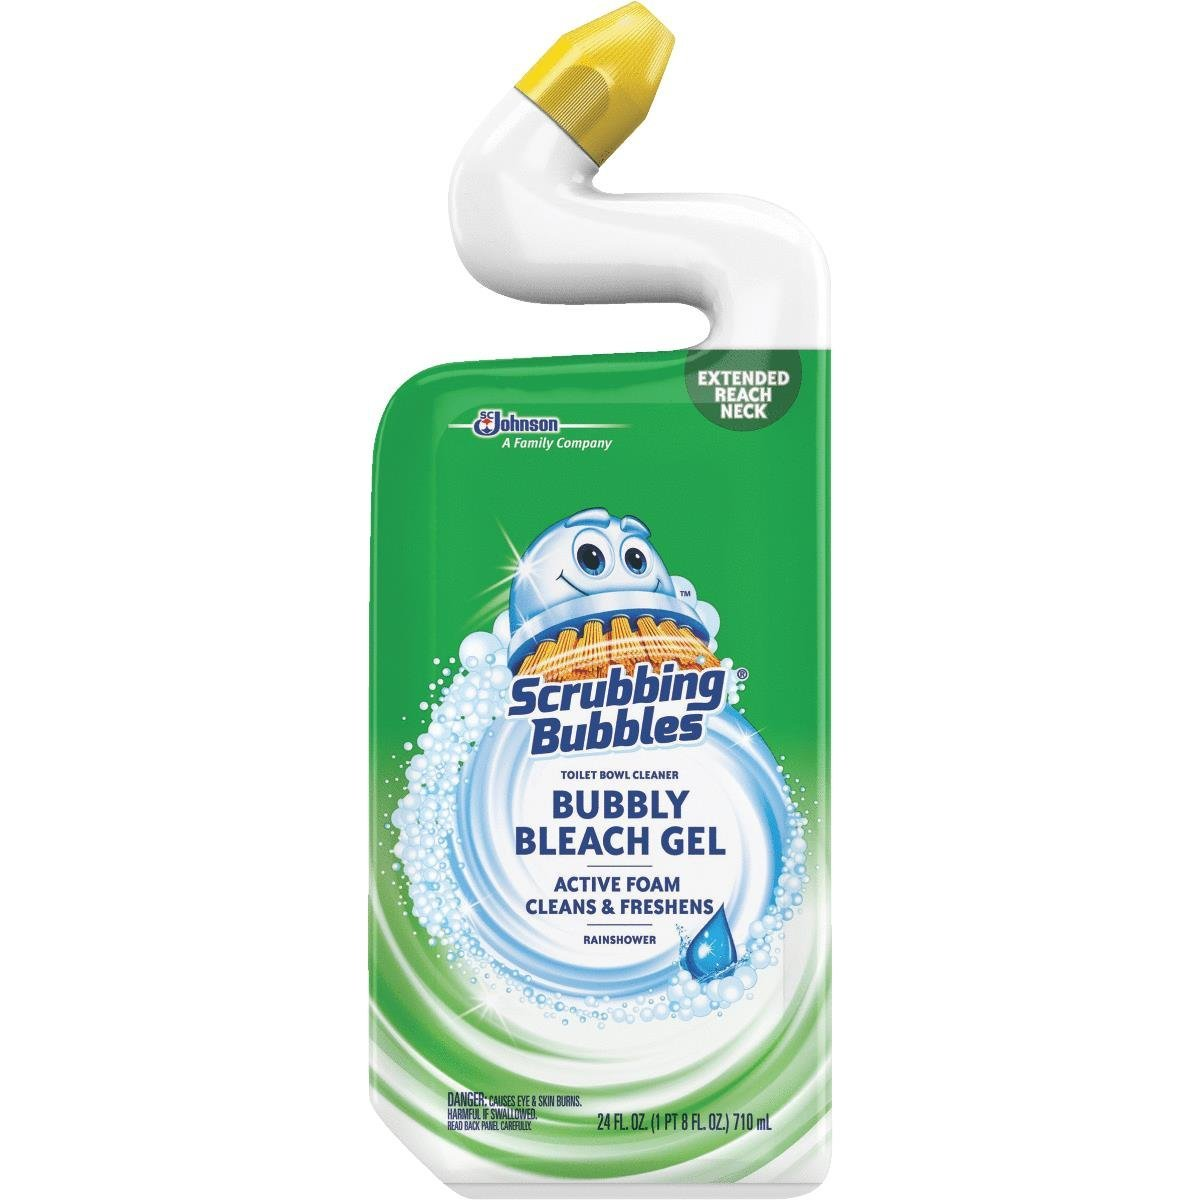 NEW Scrubbing Bubbles® Bubbly Bleach Gel Toilet Bowl Cleaner – The ...